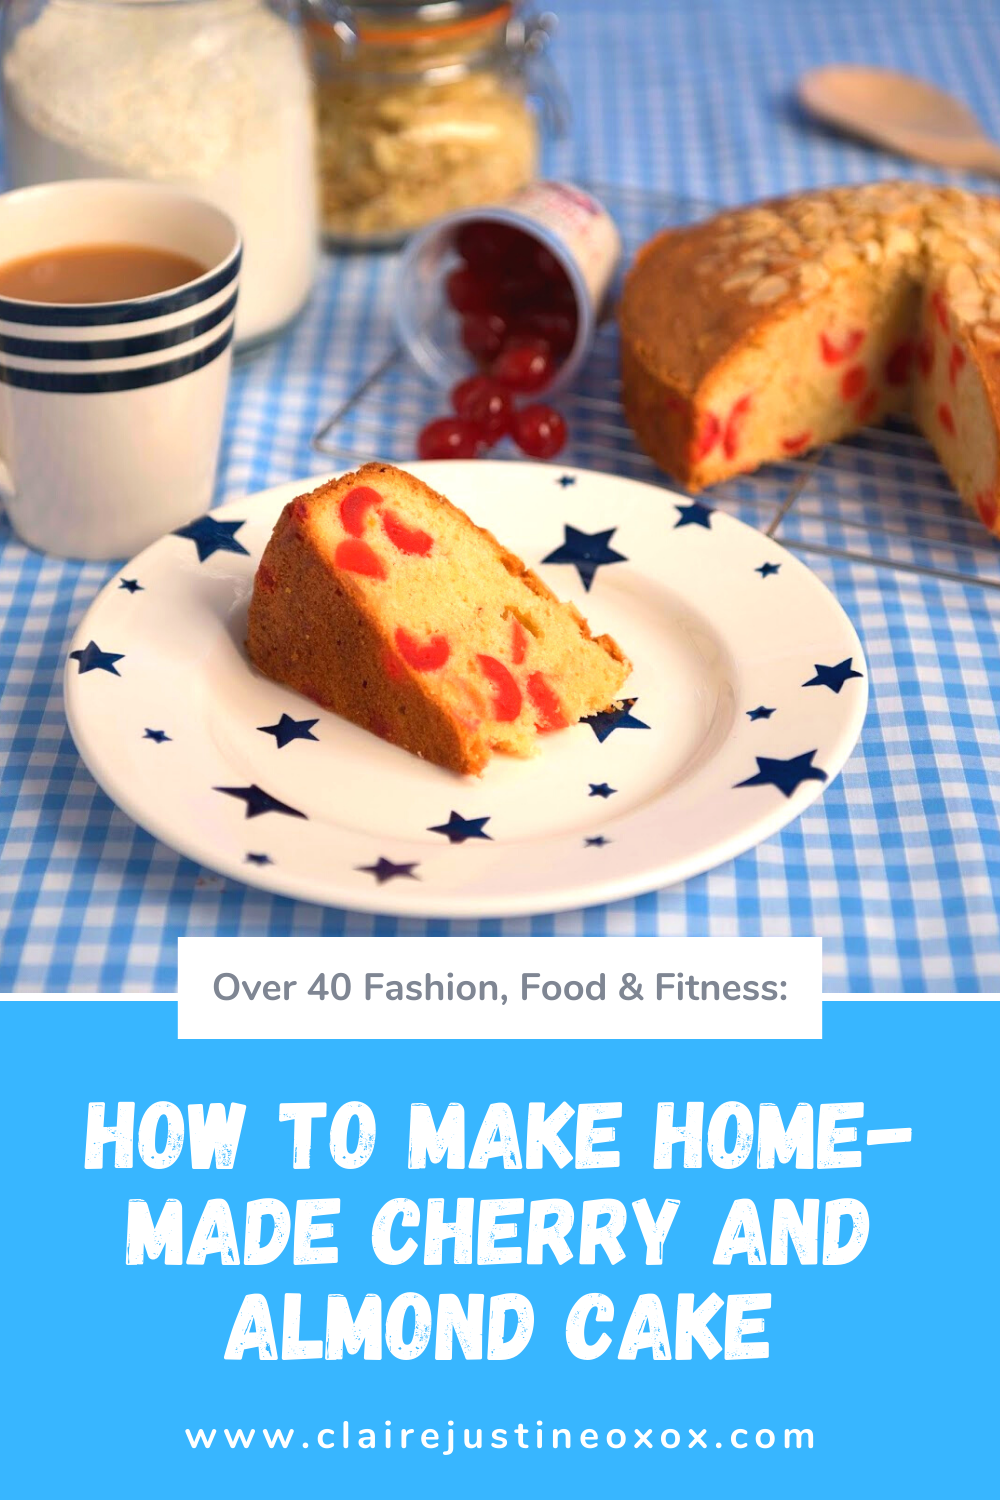 How To Make Home-made Cherry And Almond Cake